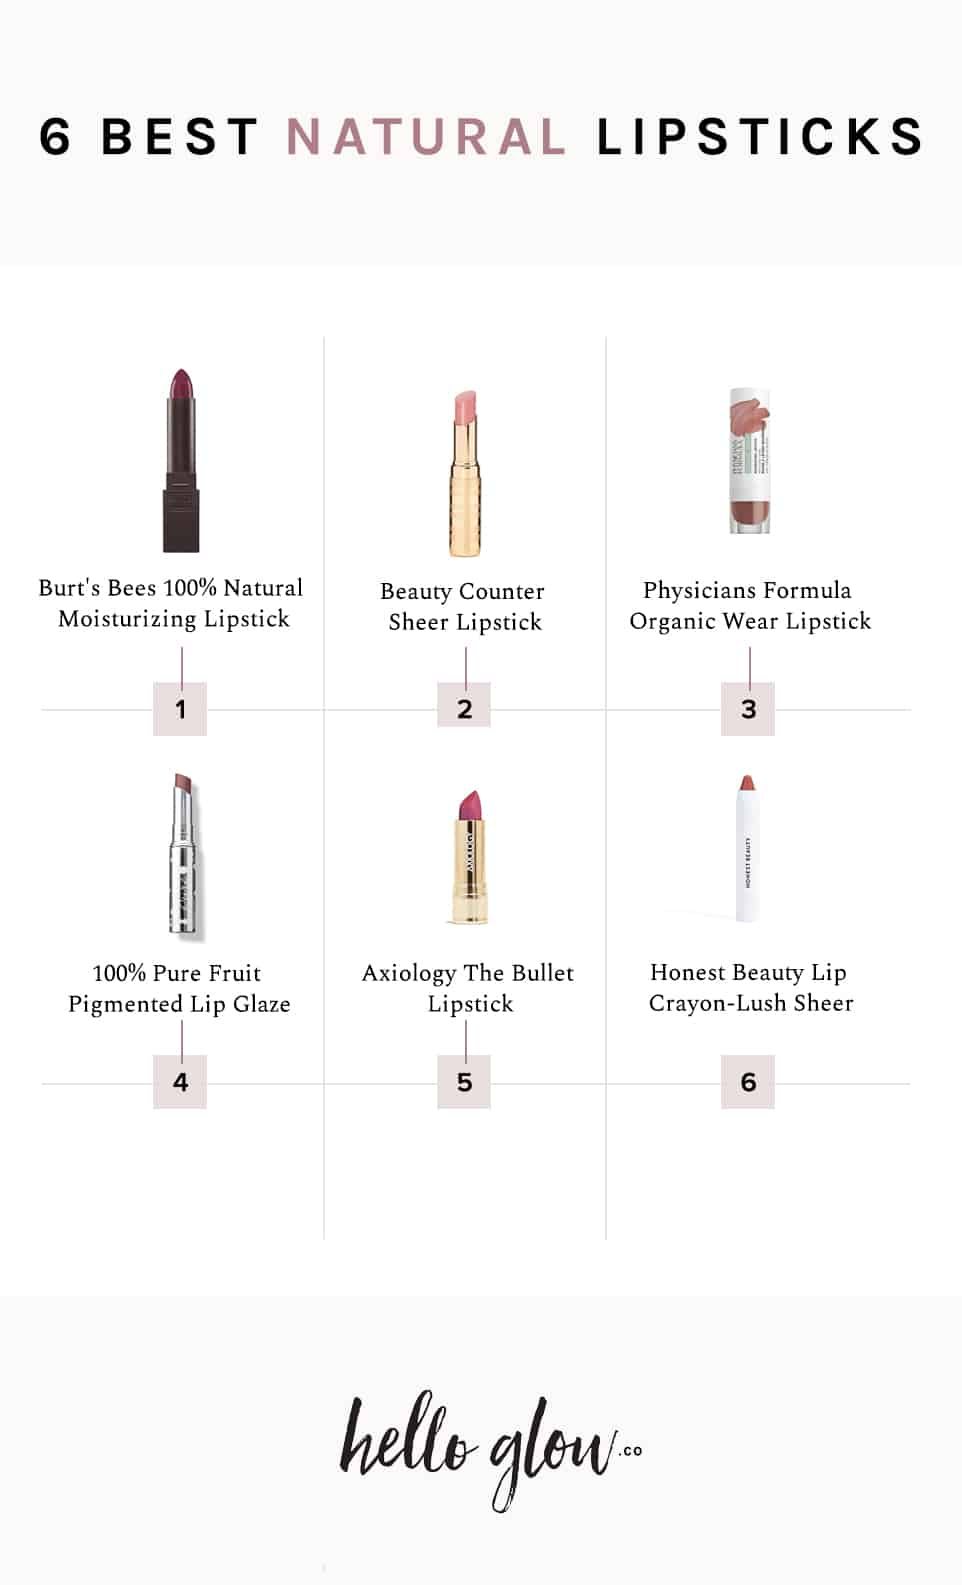 6 Best Natural Lipsticks - HelloGlow.co